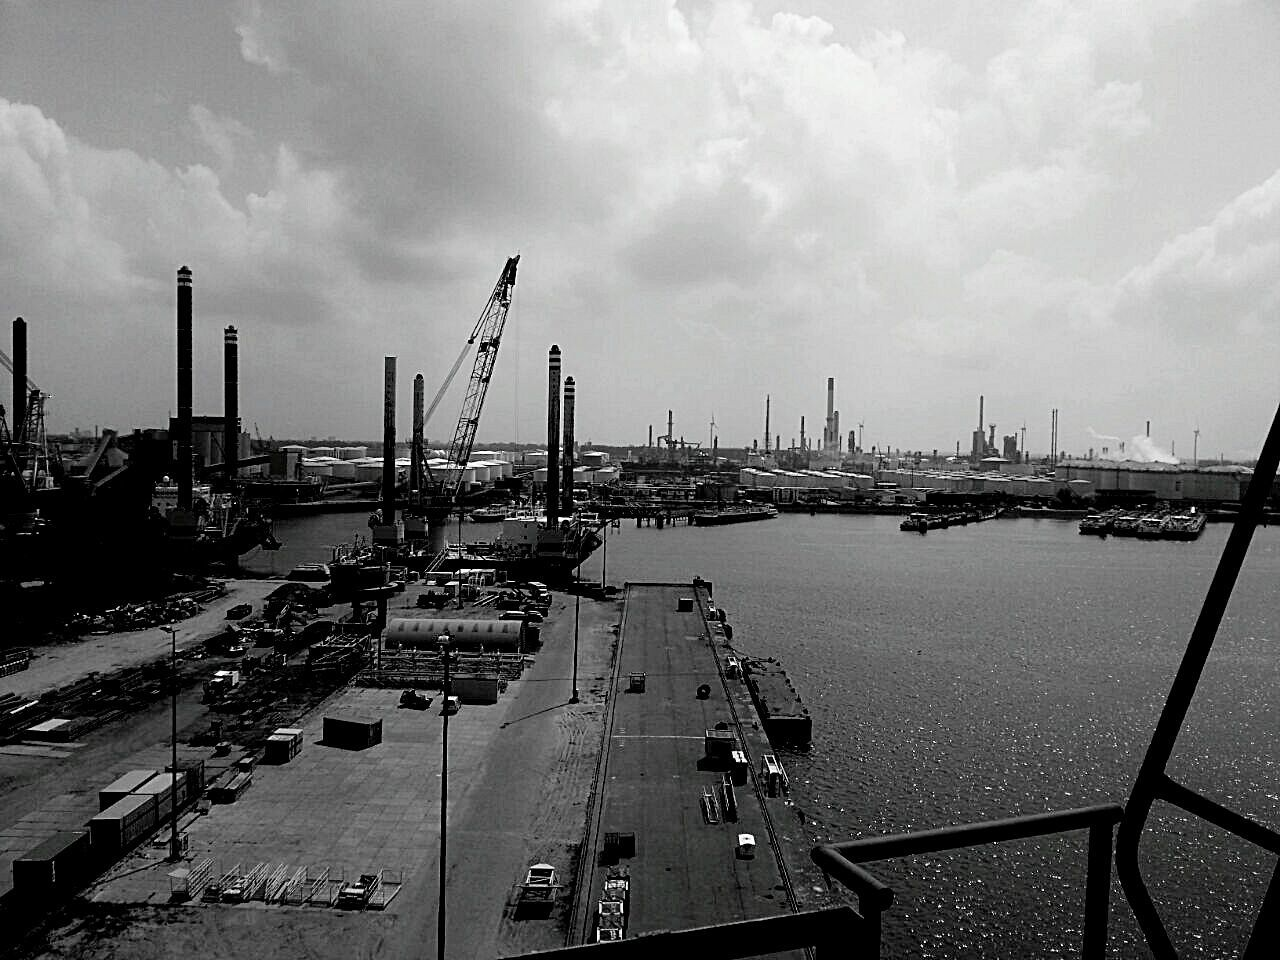 cloud - sky, sky, architecture, built structure, crane - construction machinery, city, building exterior, harbor, outdoors, freight transportation, cityscape, industry, day, commercial dock, nautical vessel, no people, water, shipyard, drilling rig